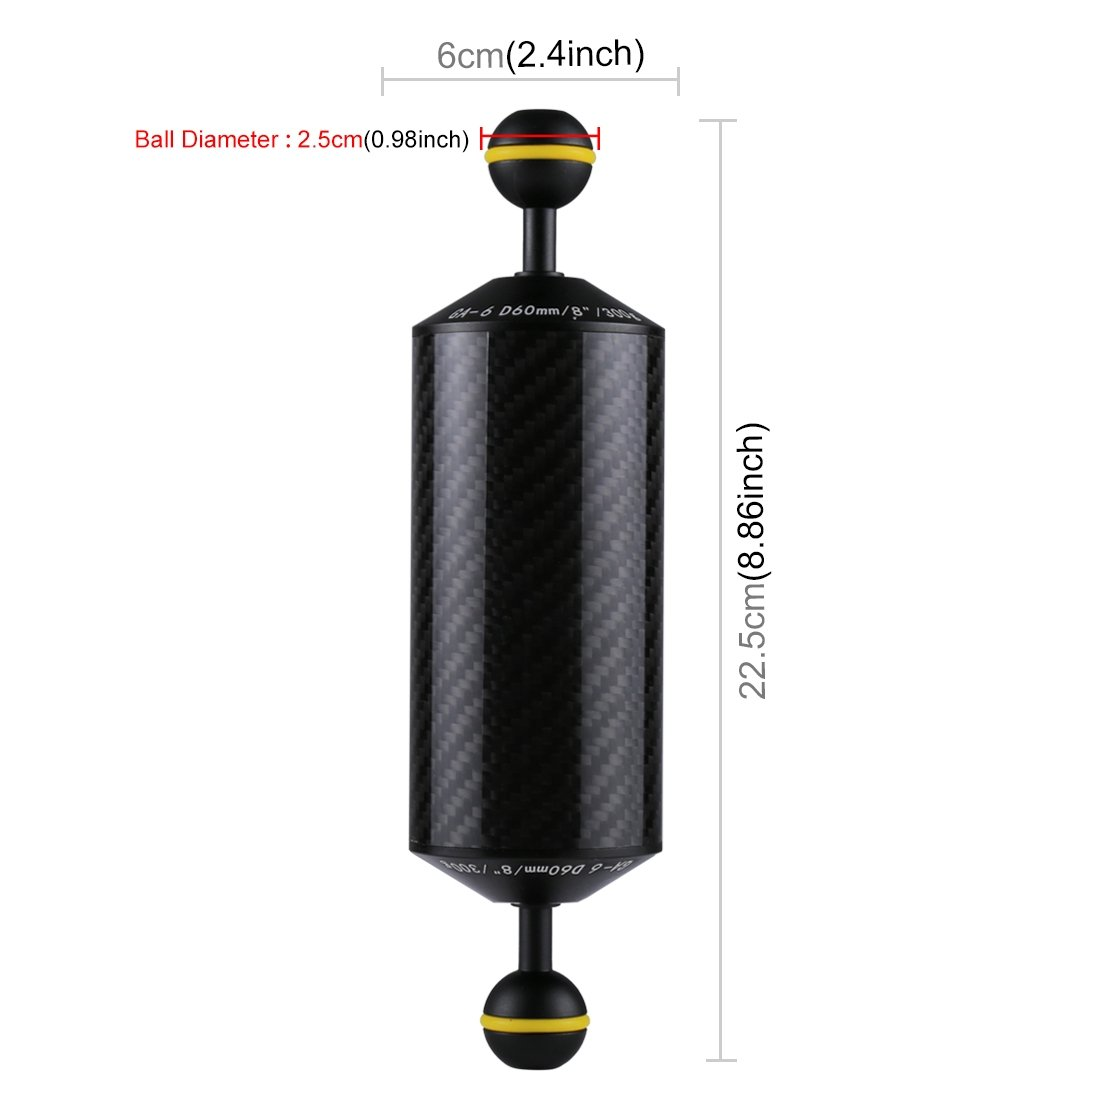 PULUZ 8.86 inch/22.5cm Diameter 60cm Carbon Fiber Dual Balls Float Arm Underwater Photography Buoyancy System